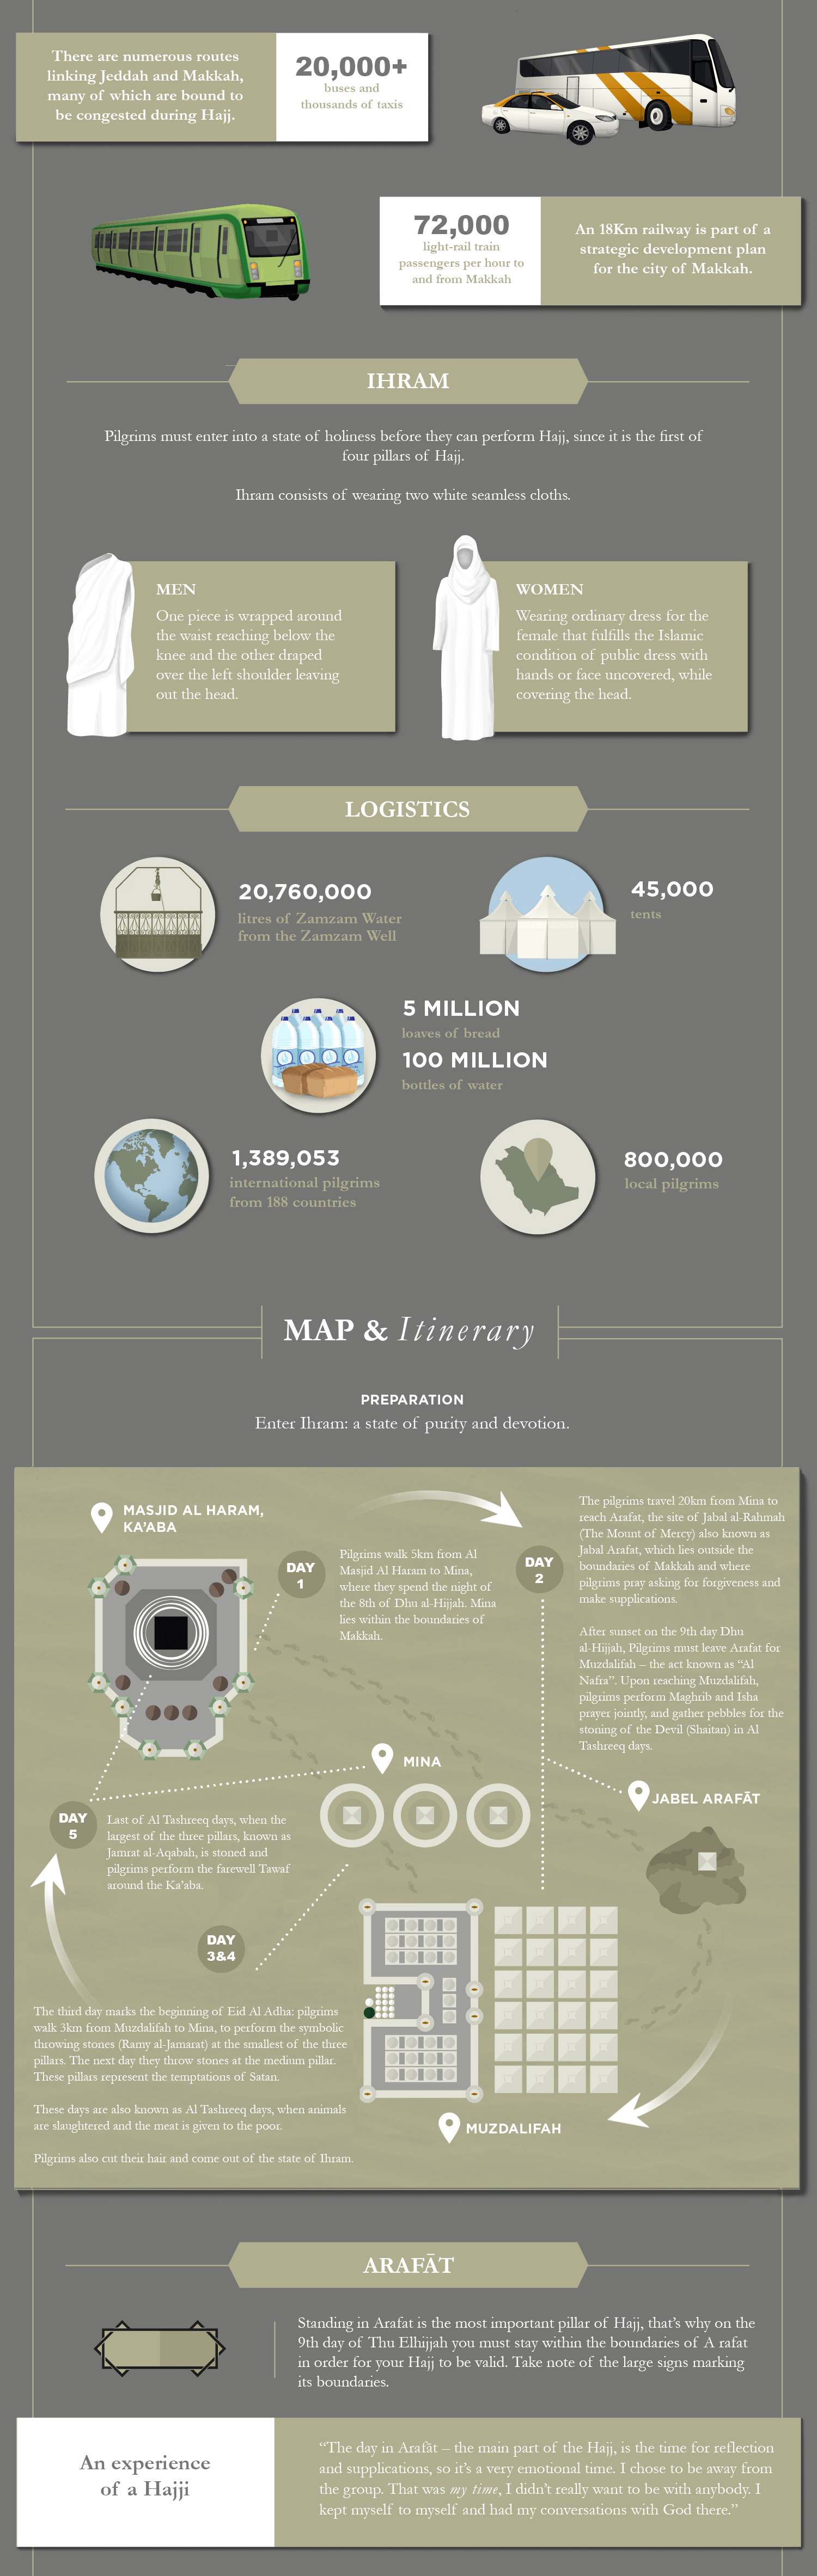 A Guide to the Hajj